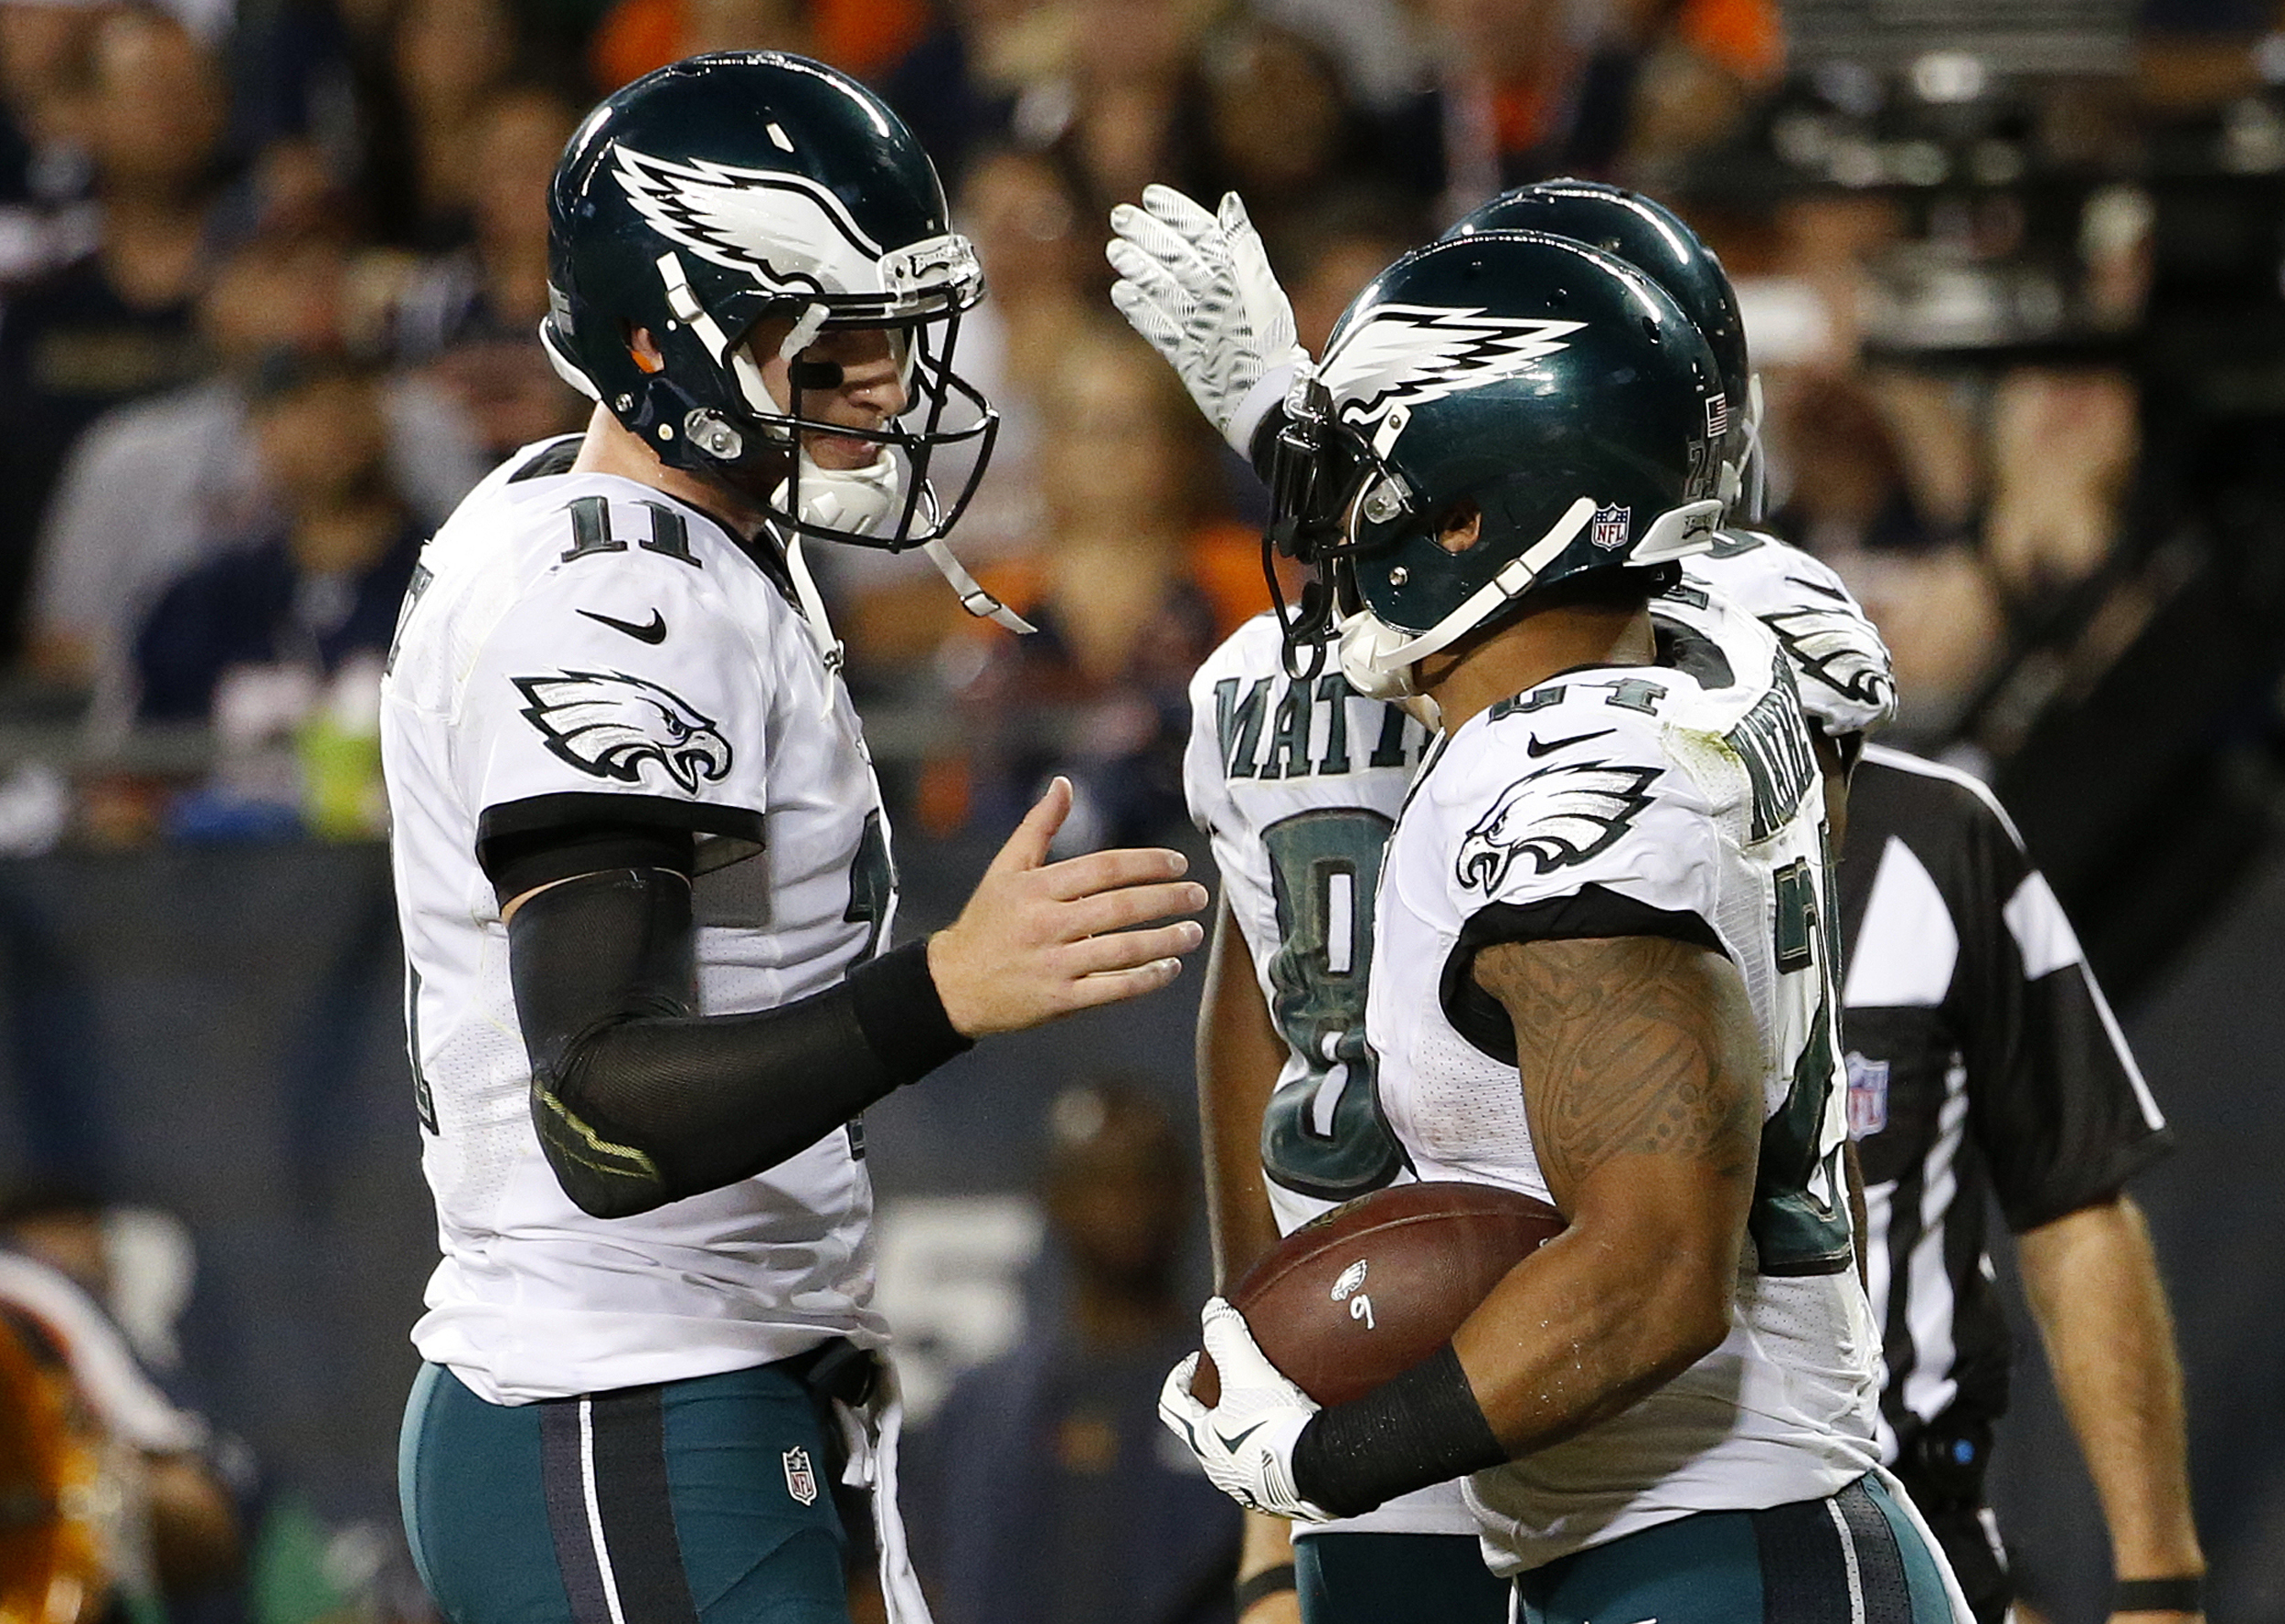 Philadelphia Eagles quarterback Carson Wentz (11) celebrates a touchdown with Philadelphia Eagles running back Ryan Mathews (24)during the second half of an NFL football game, Monday, Sept. 19, 2016, in Chicago. (AP Photo/Nam Y. Huh)